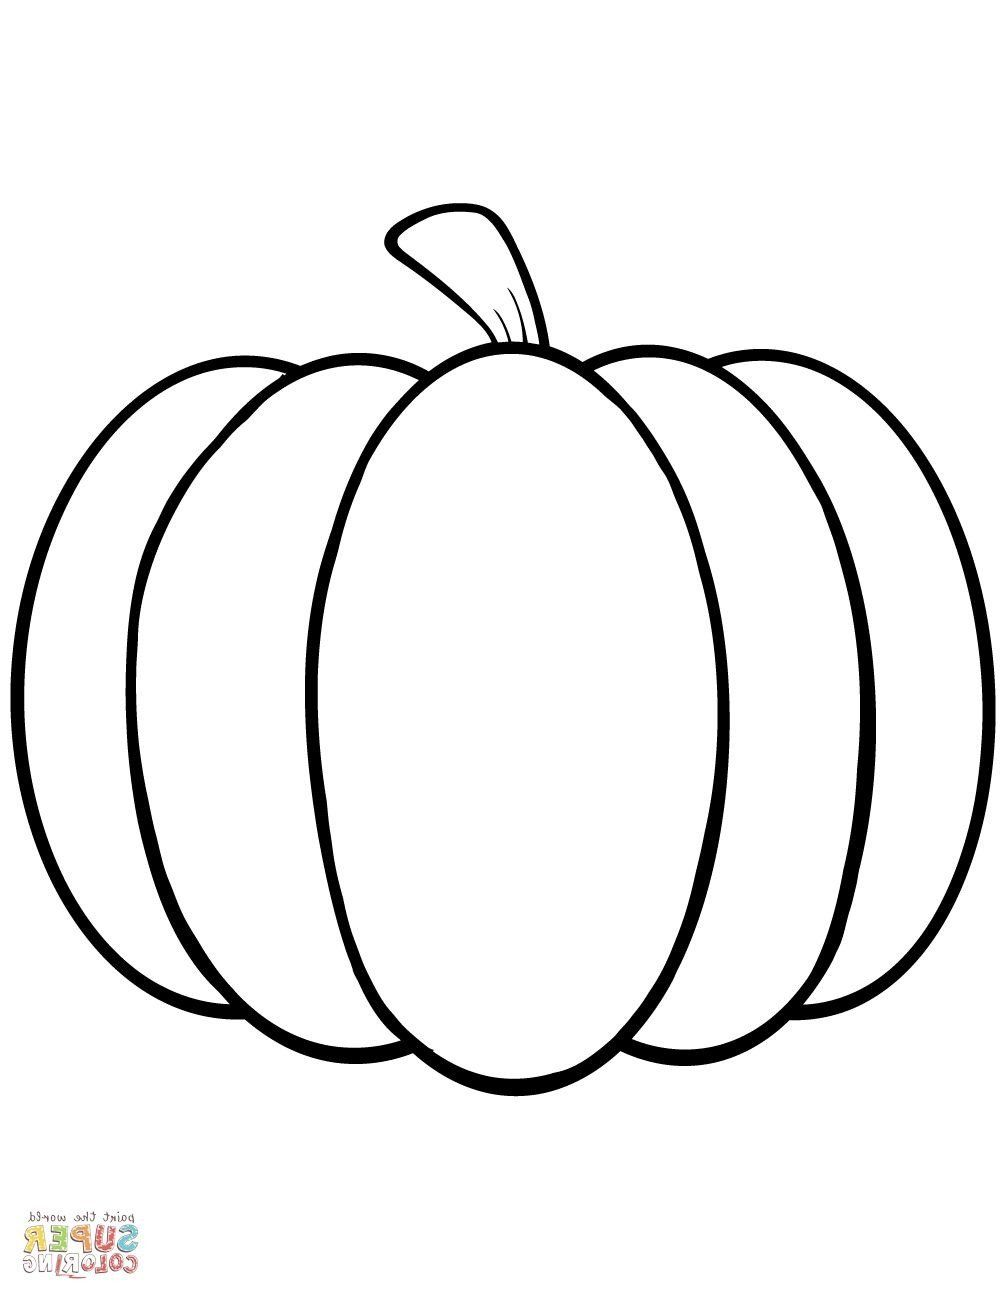 Candy Corn Coloring Page Lovely Pumpkin Coloring Sheet Coloring Page Pumpkin Coloring Sheet Pumpkin Coloring Template Pumpkin Coloring Pages